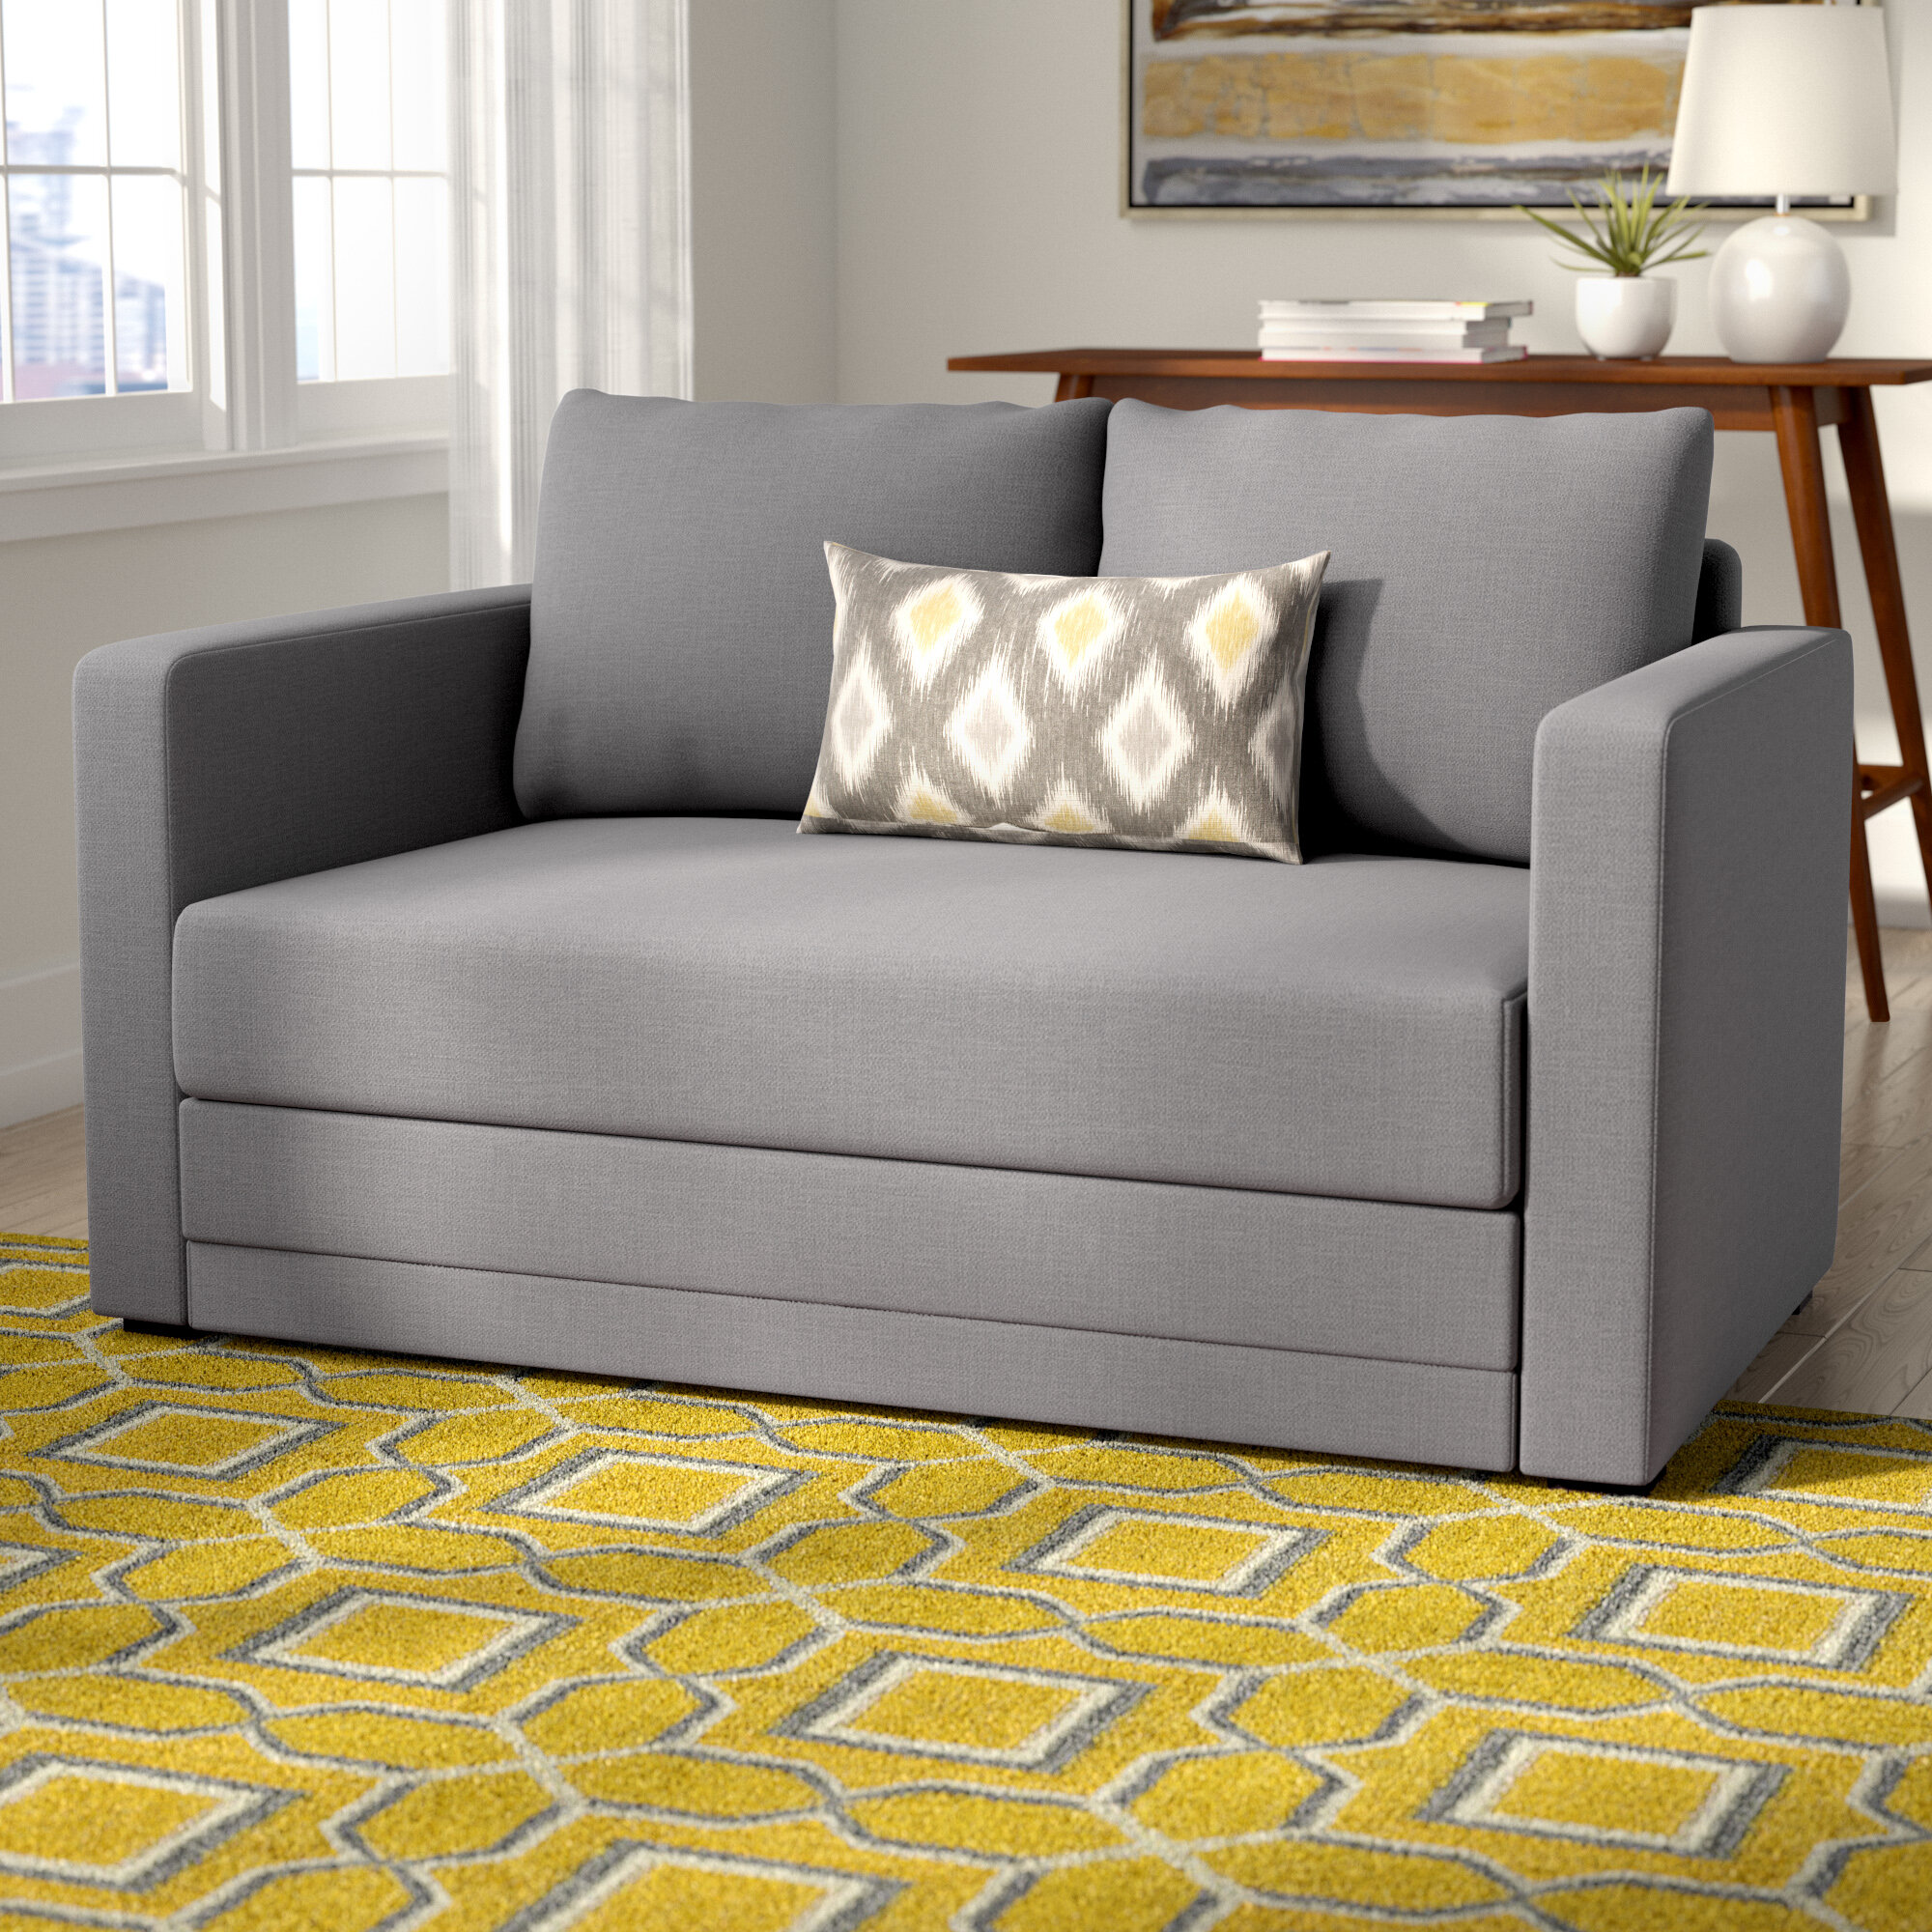 Fine Campanelli Sleeper Sofa Bed Caraccident5 Cool Chair Designs And Ideas Caraccident5Info